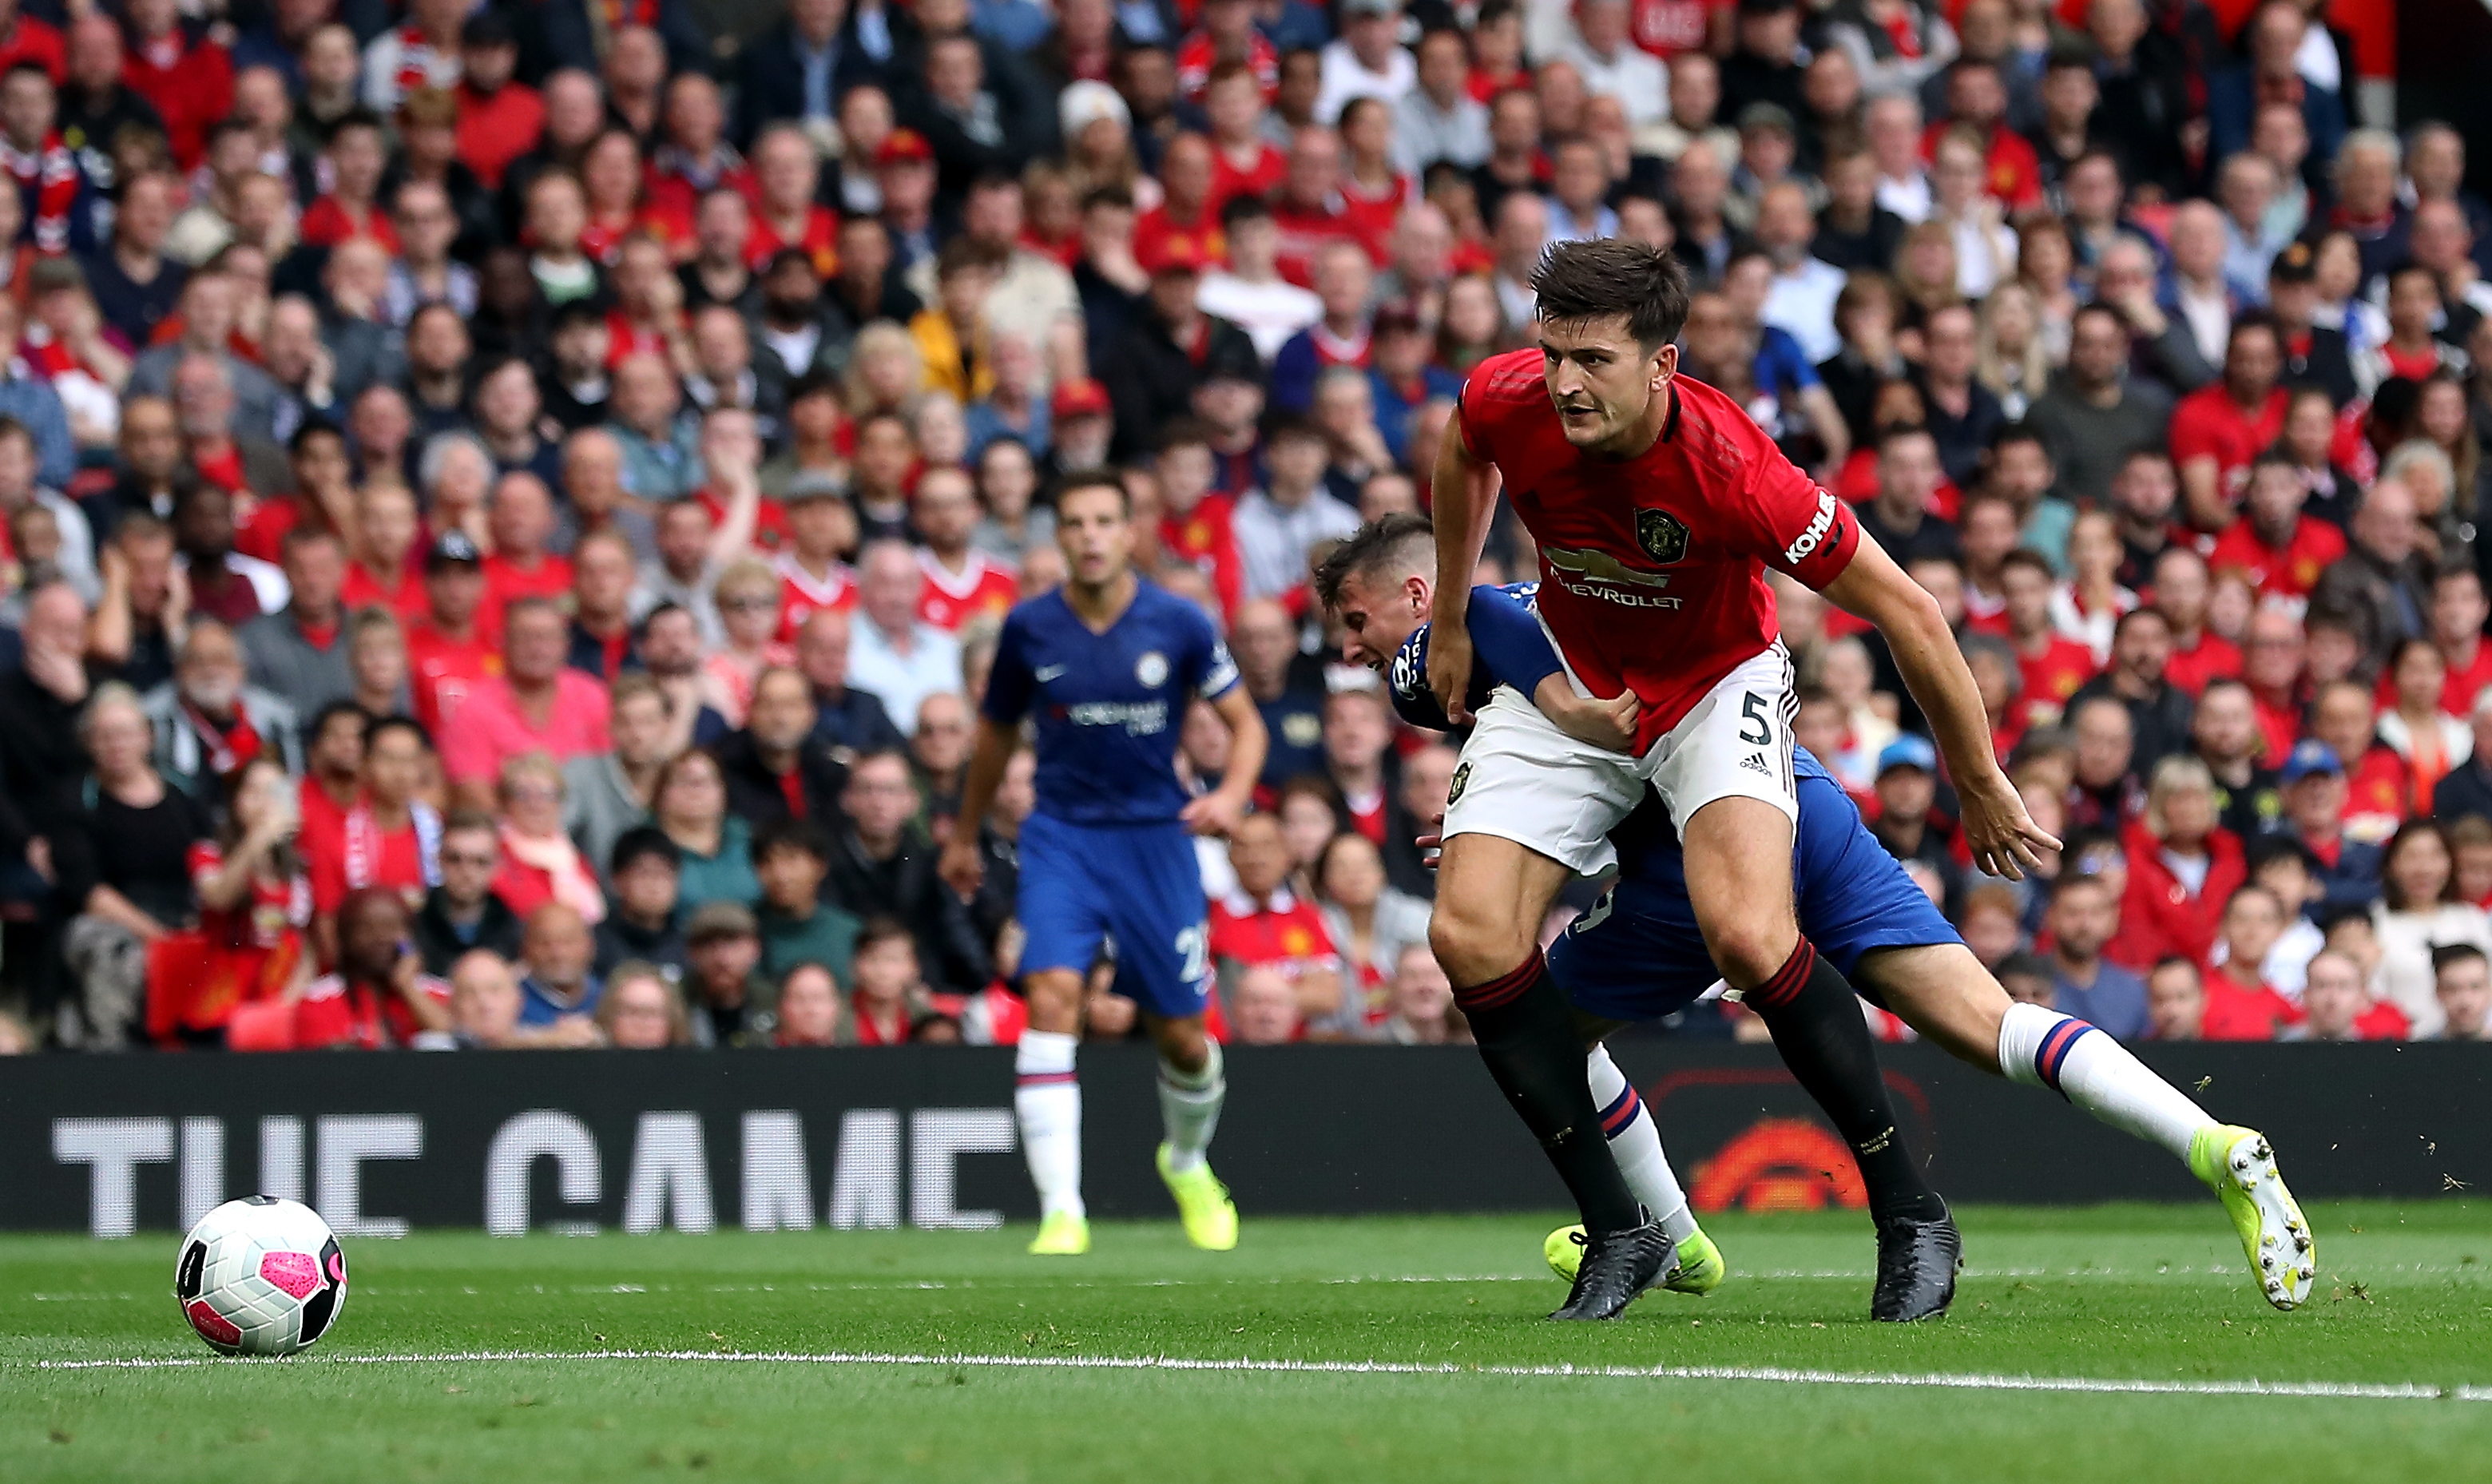 Harry Maguire helped Manchester United keep a clean sheet at Old Trafford - something they only managed twice last season